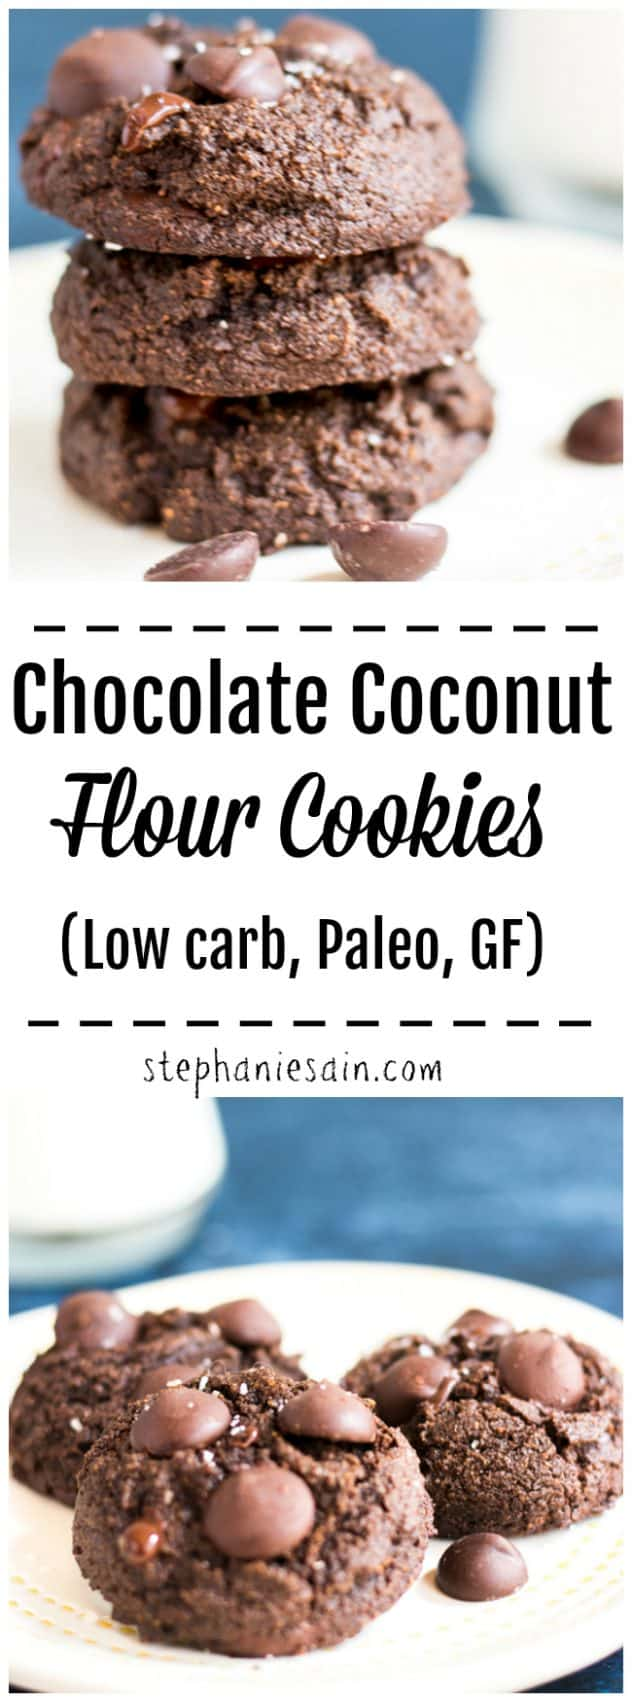 These Chocolate Coconut Flour Cookies are super easy to make, healthy and loaded with rich decadent chocolately goodness. Perfect for snacks or lunch boxes. No added refined sugar, low carb, GF, & Paleo.